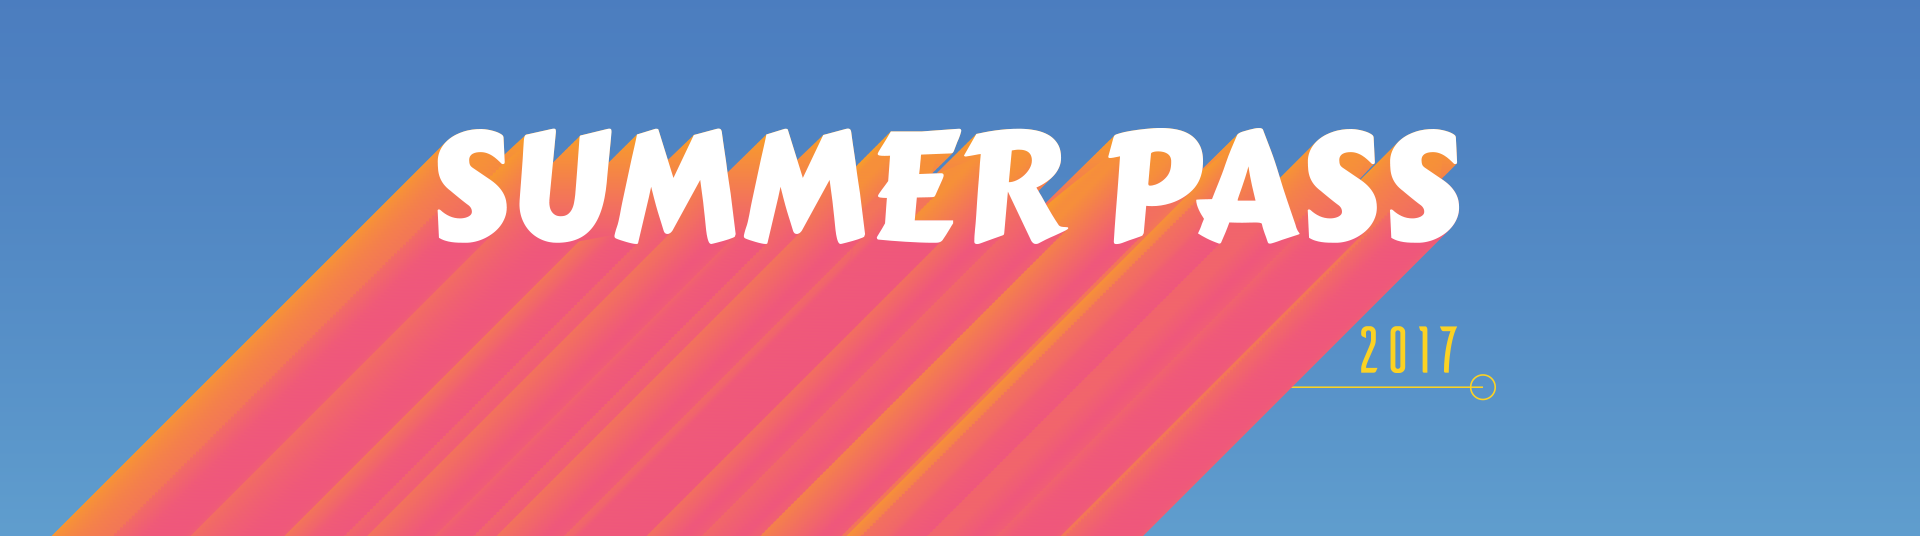 SummerPass-FormImage.png